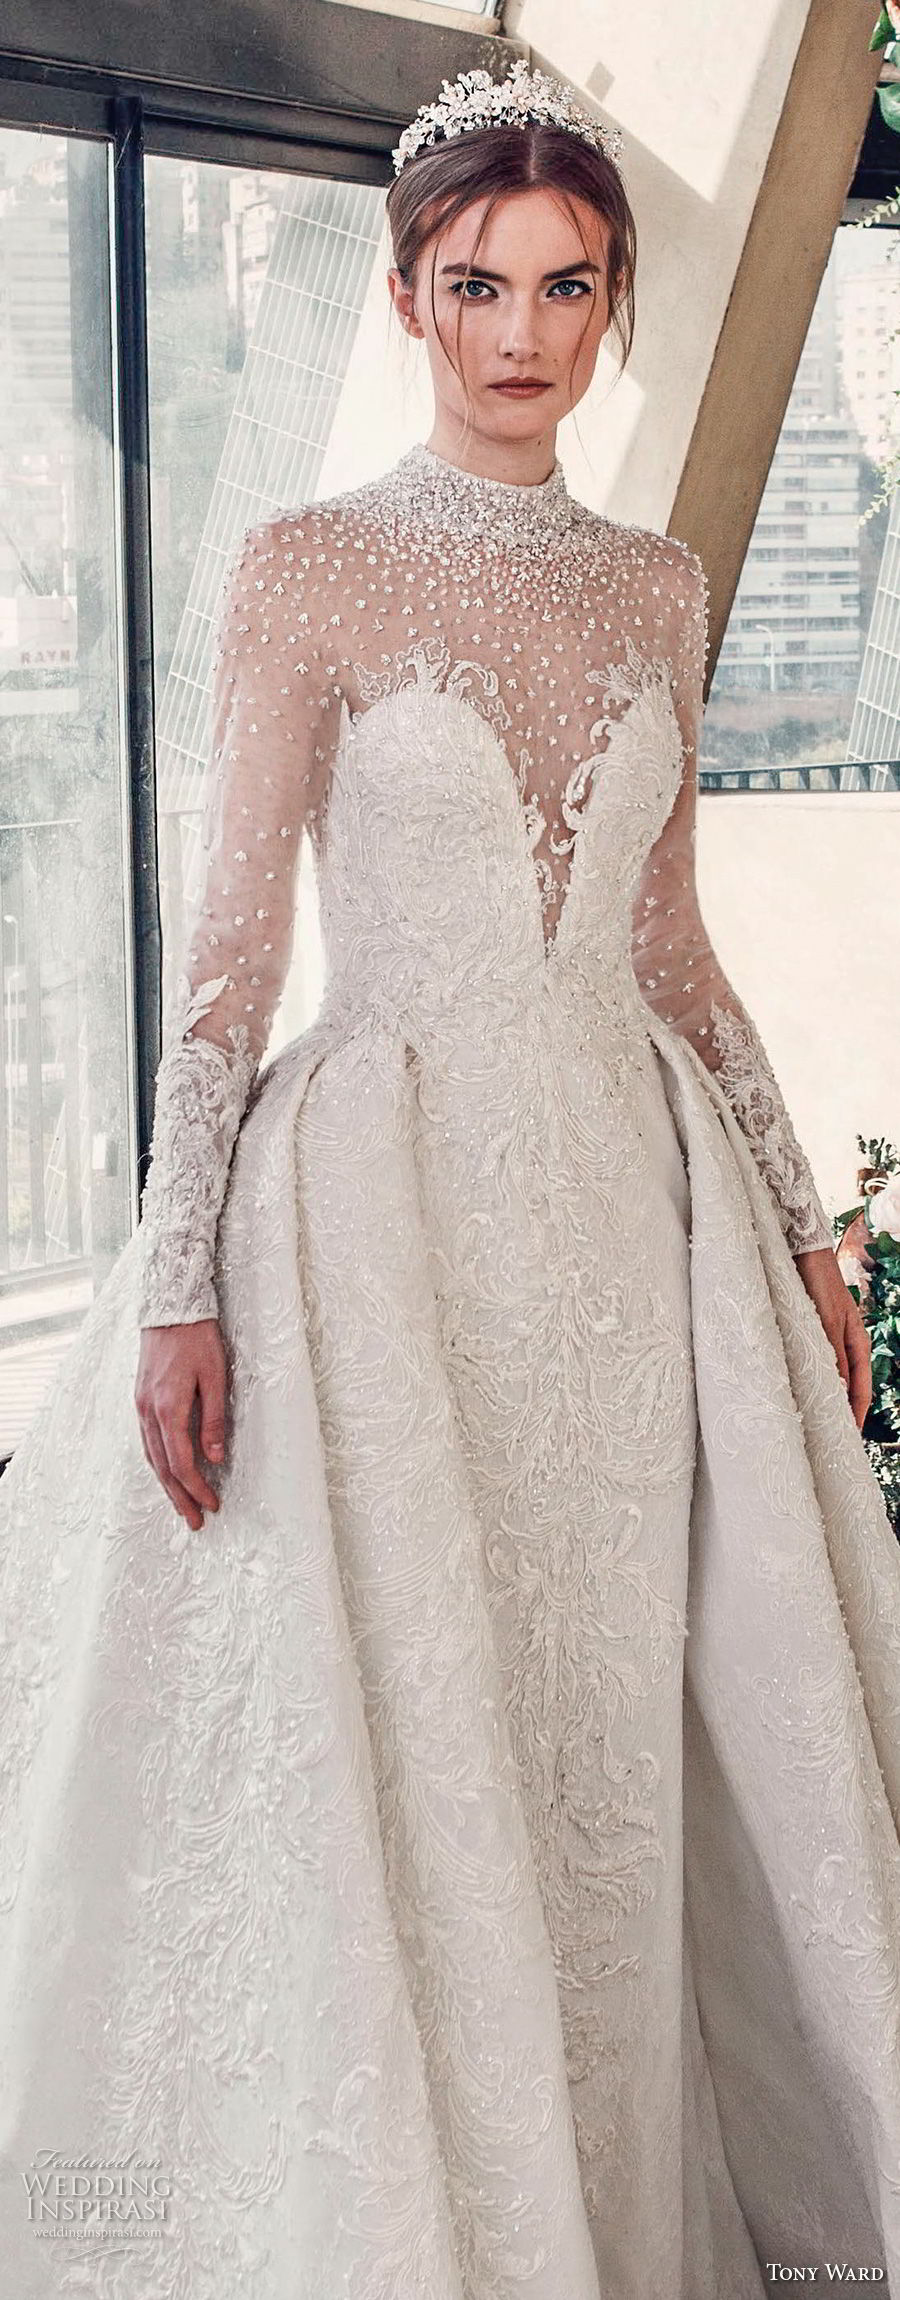 tony ward mariee 2019 long sleeves illusion high neck deep sweetheart neckline full embellishment princess ball gown a  line wedding dress chapel train (3) zv